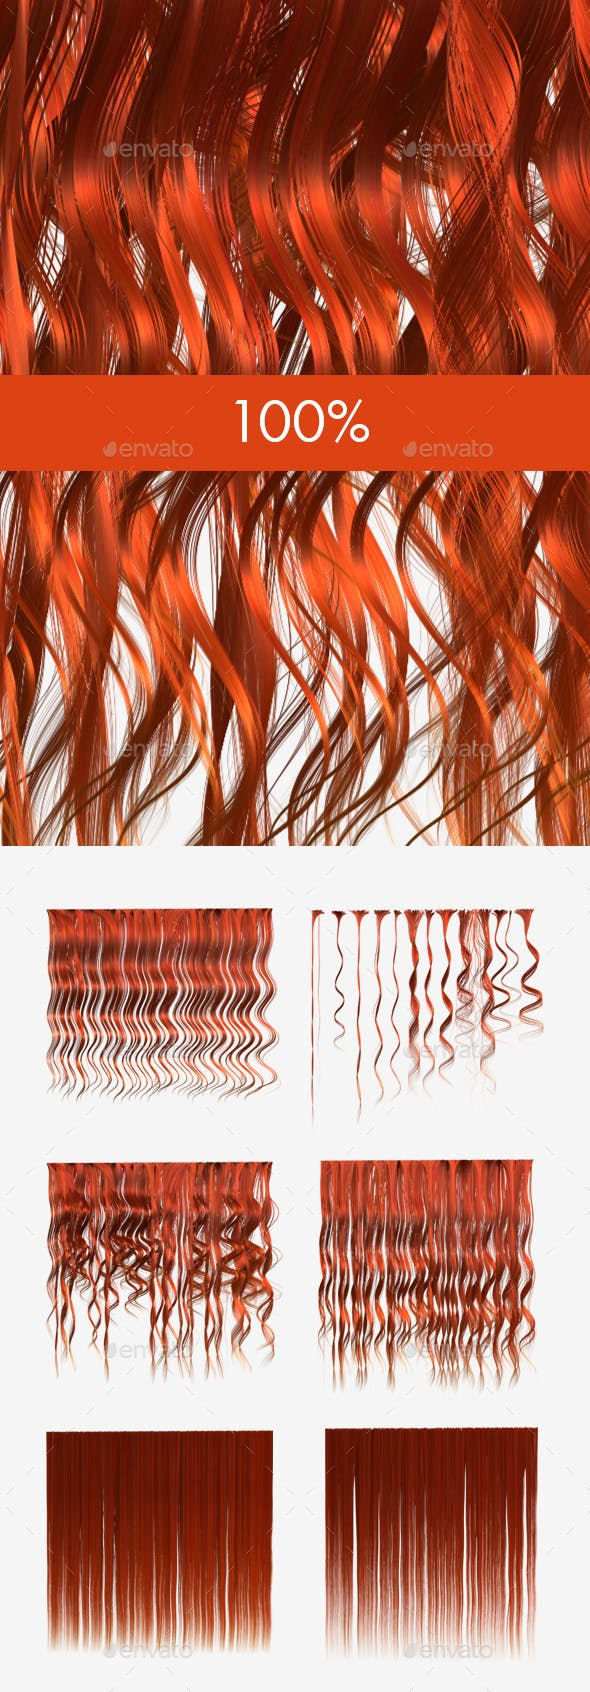 6 Ginger Hair Textures - 3DOcean Item for Sale